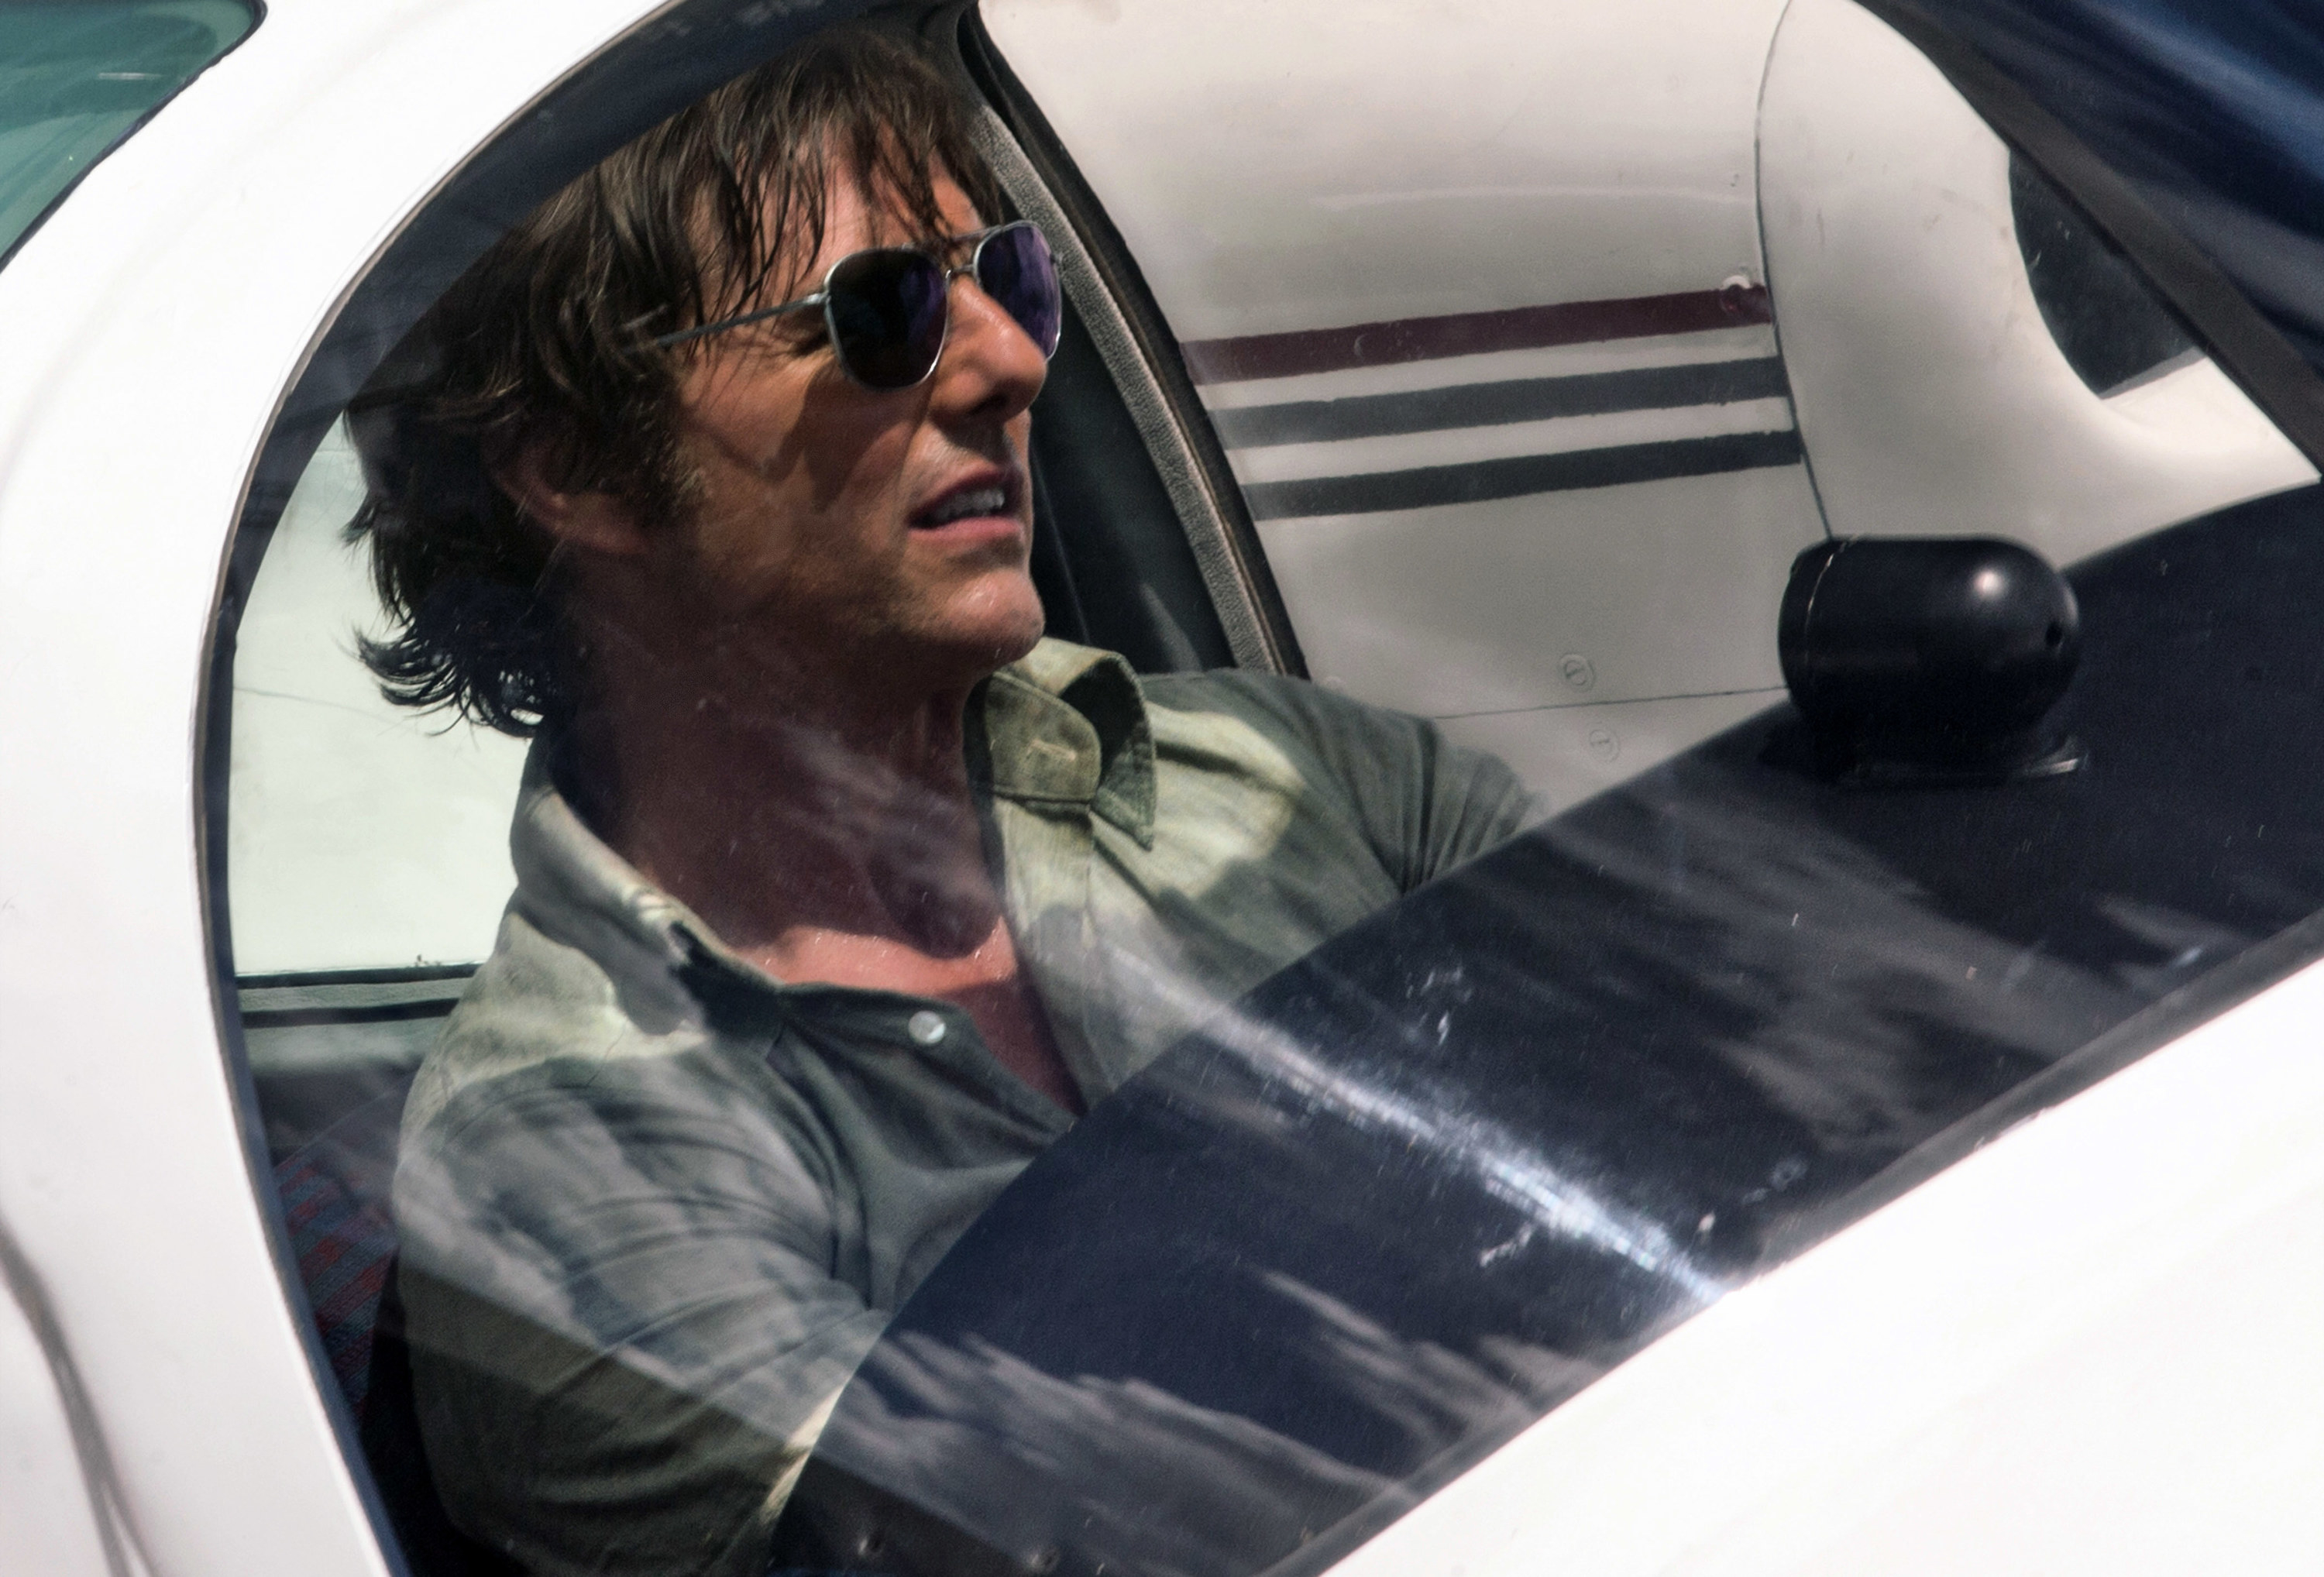 Tom Cruise in a plane